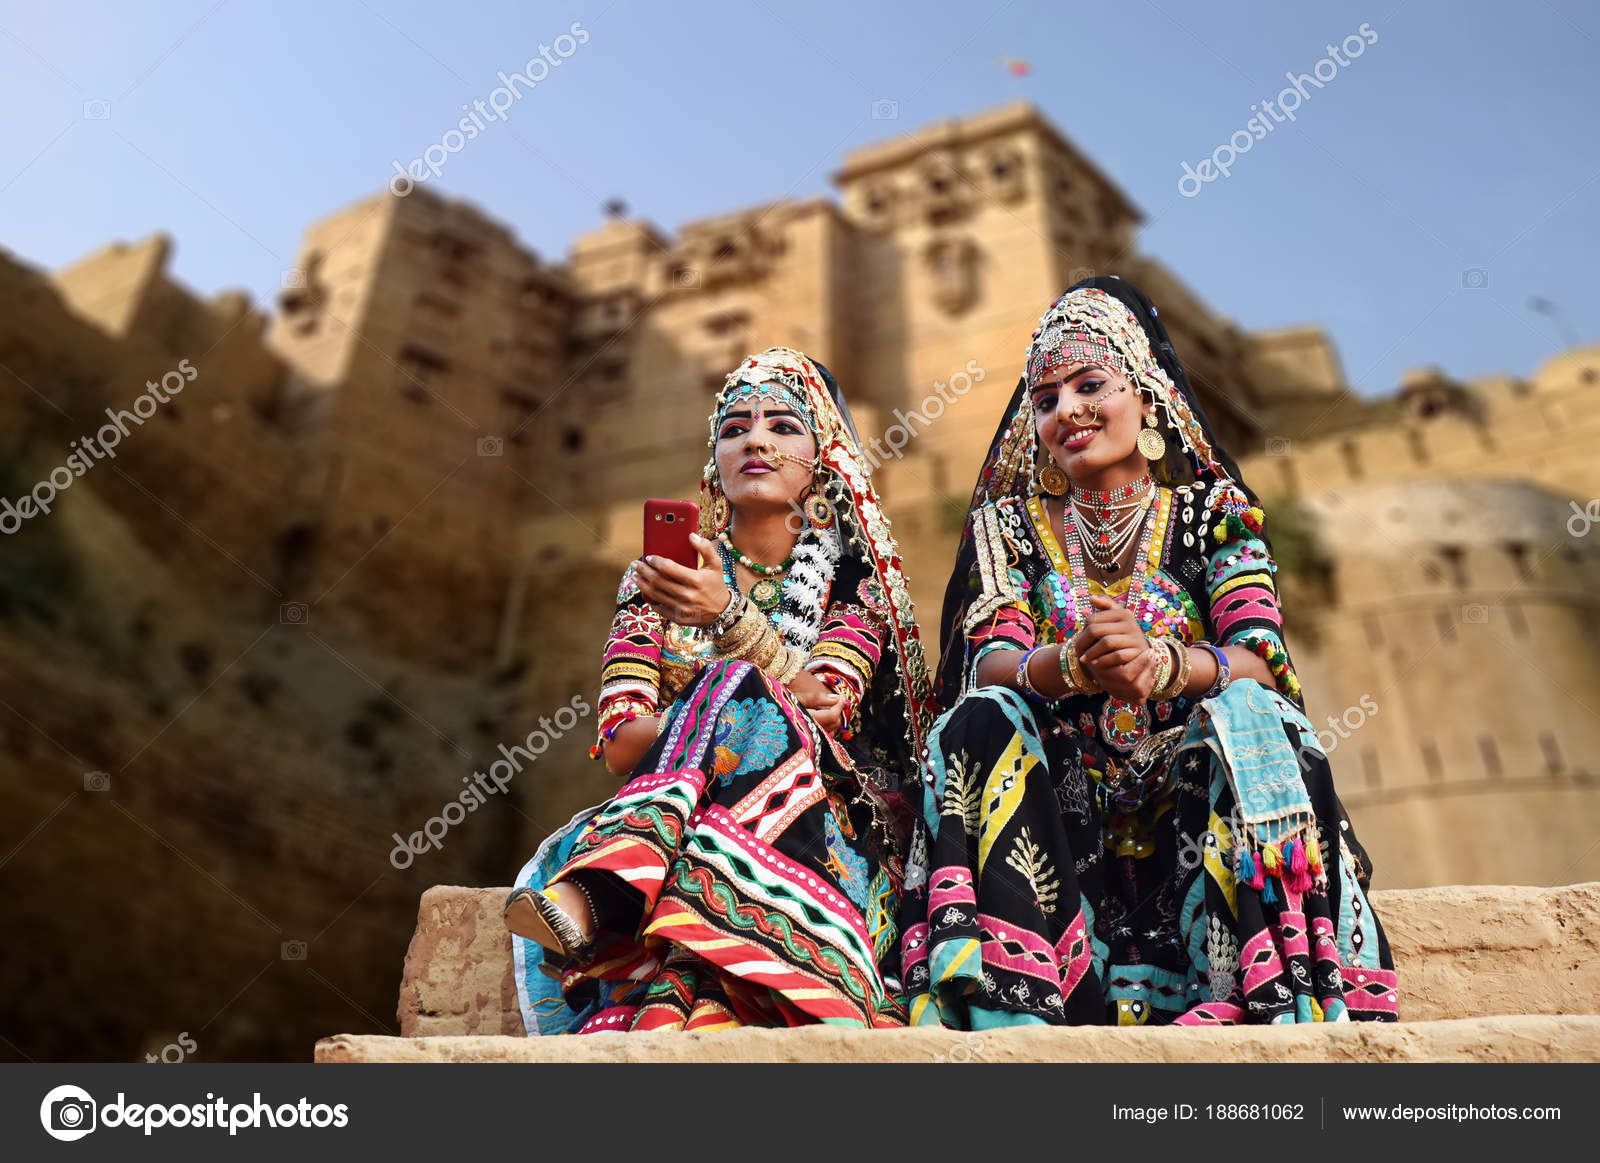 6d528e2ef3cf Rajasthan India February 2018 Beautiful Kalbelia Dancers Traditional Black  Rajasthani — Stock Photo